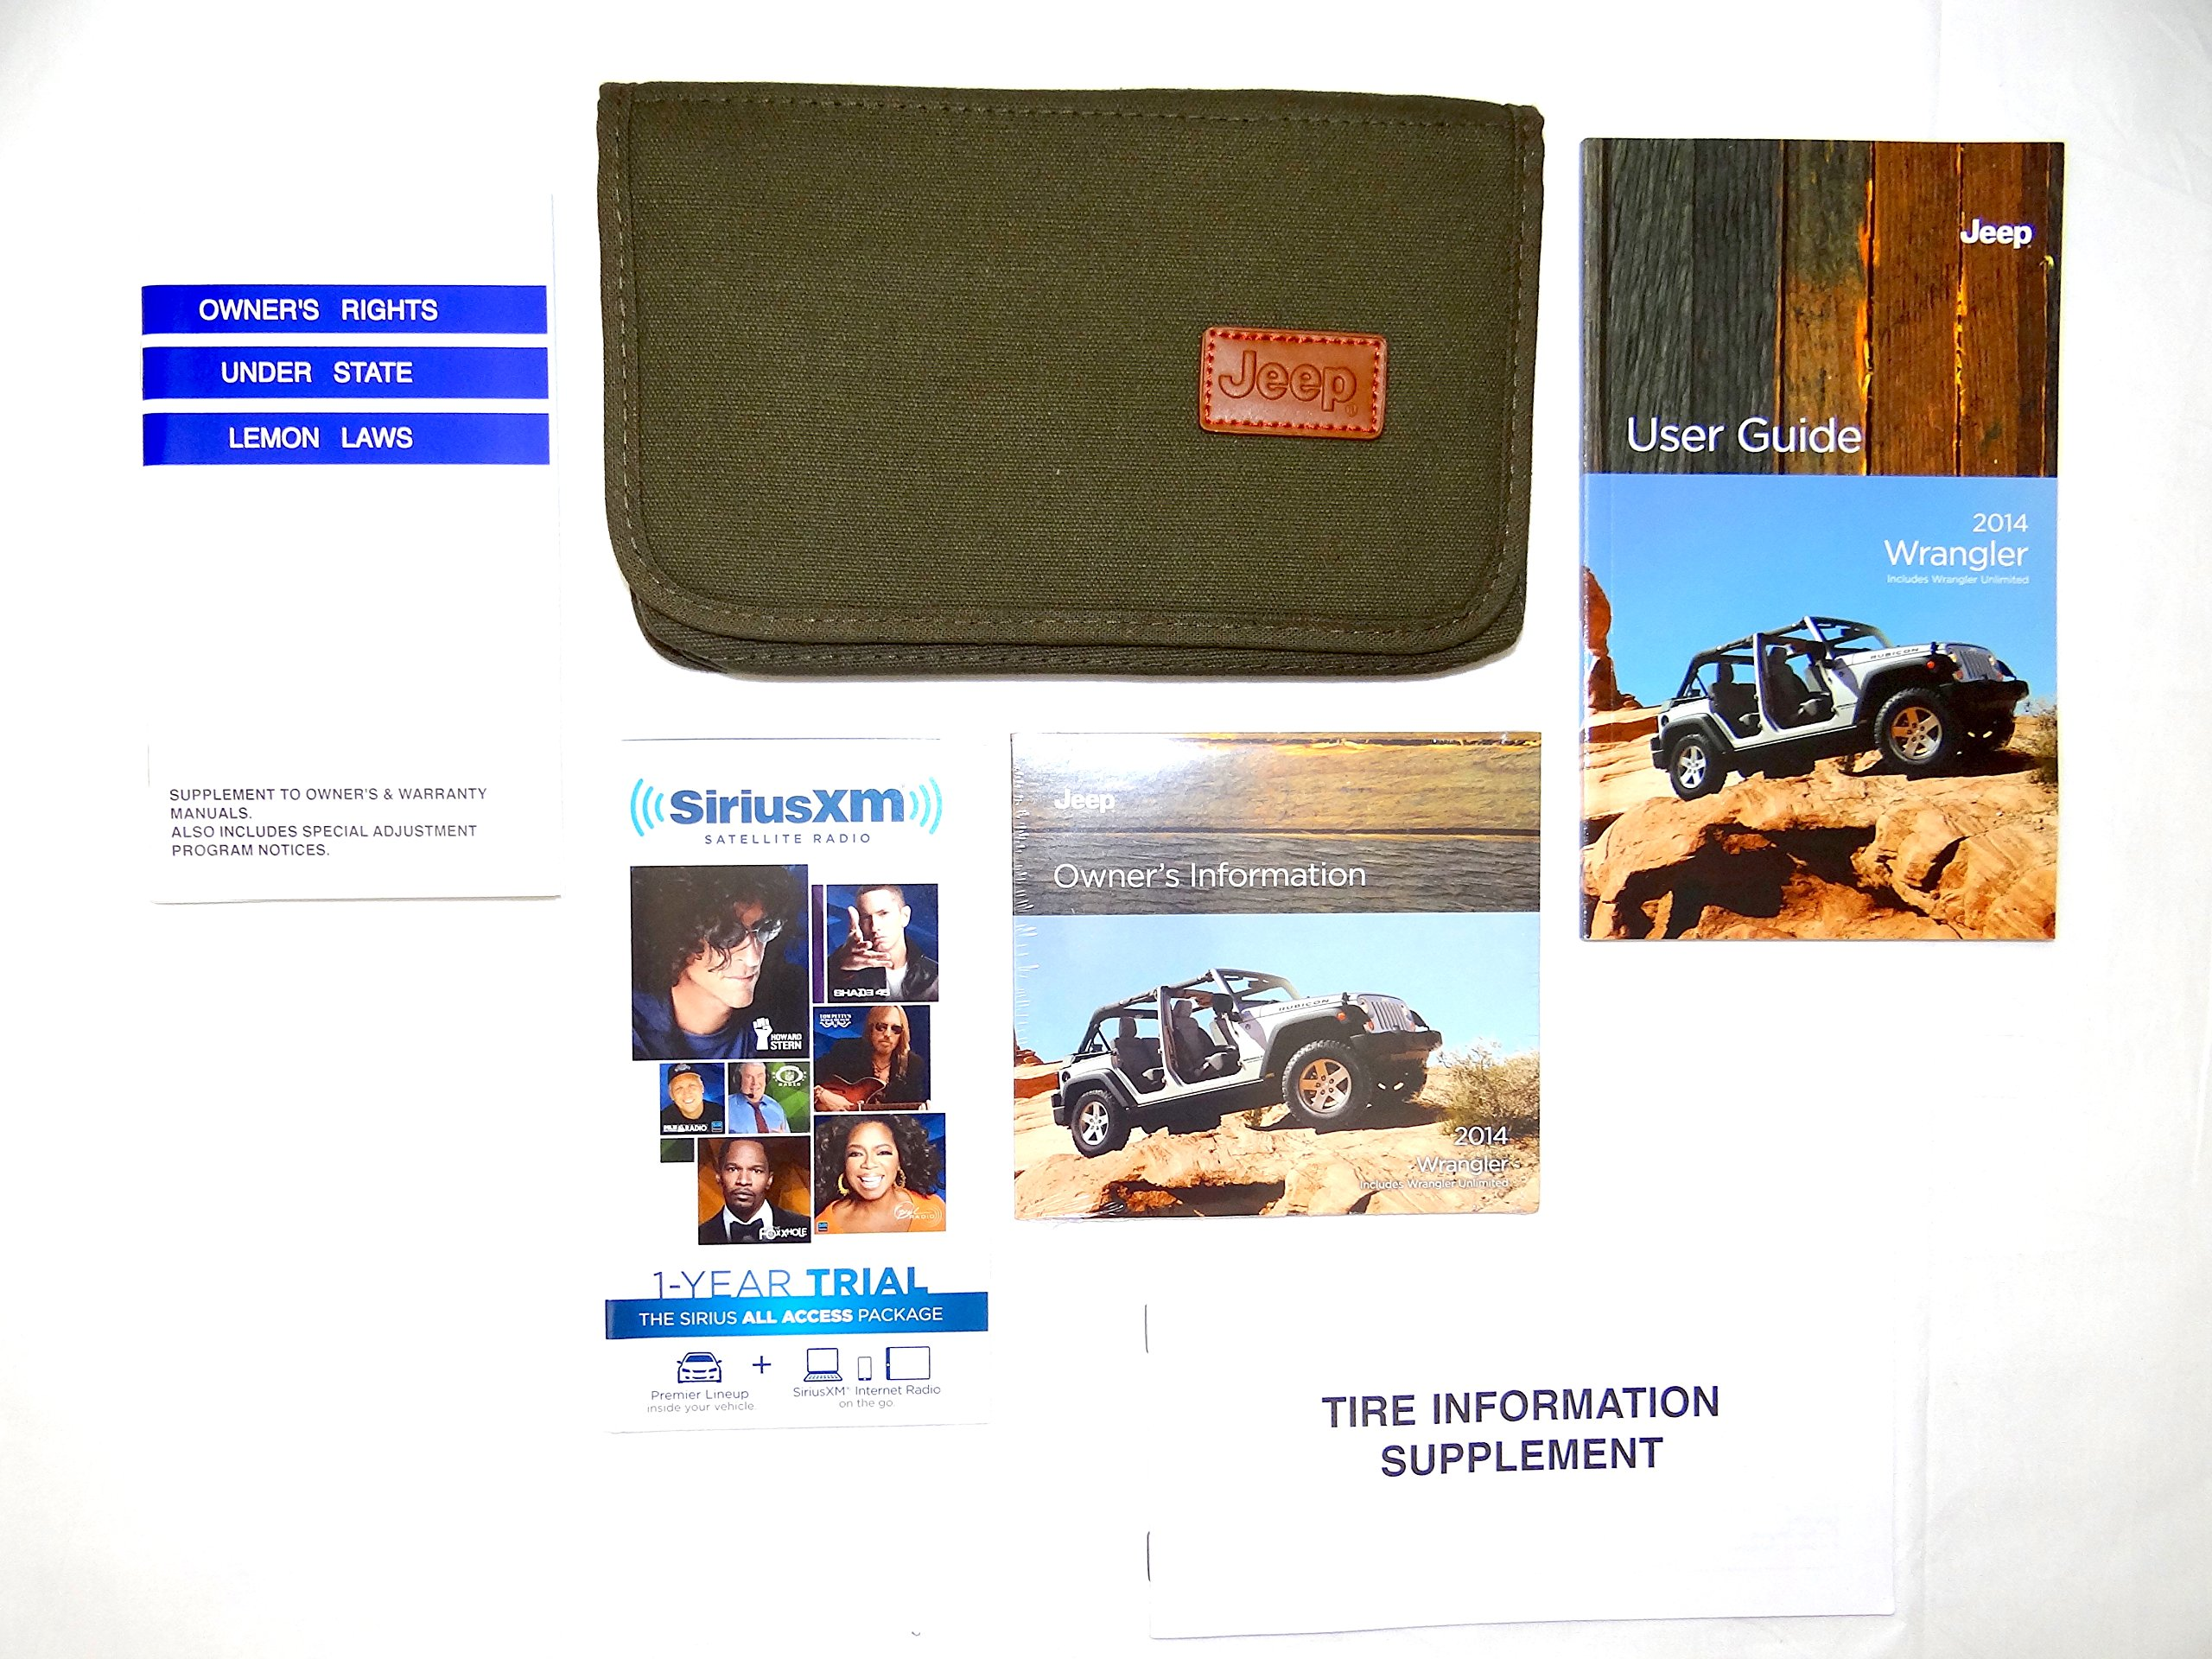 2014 Jeep Wrangler Owners Manual with Case: Jeep: 0708676917836:  Amazon.com: Books